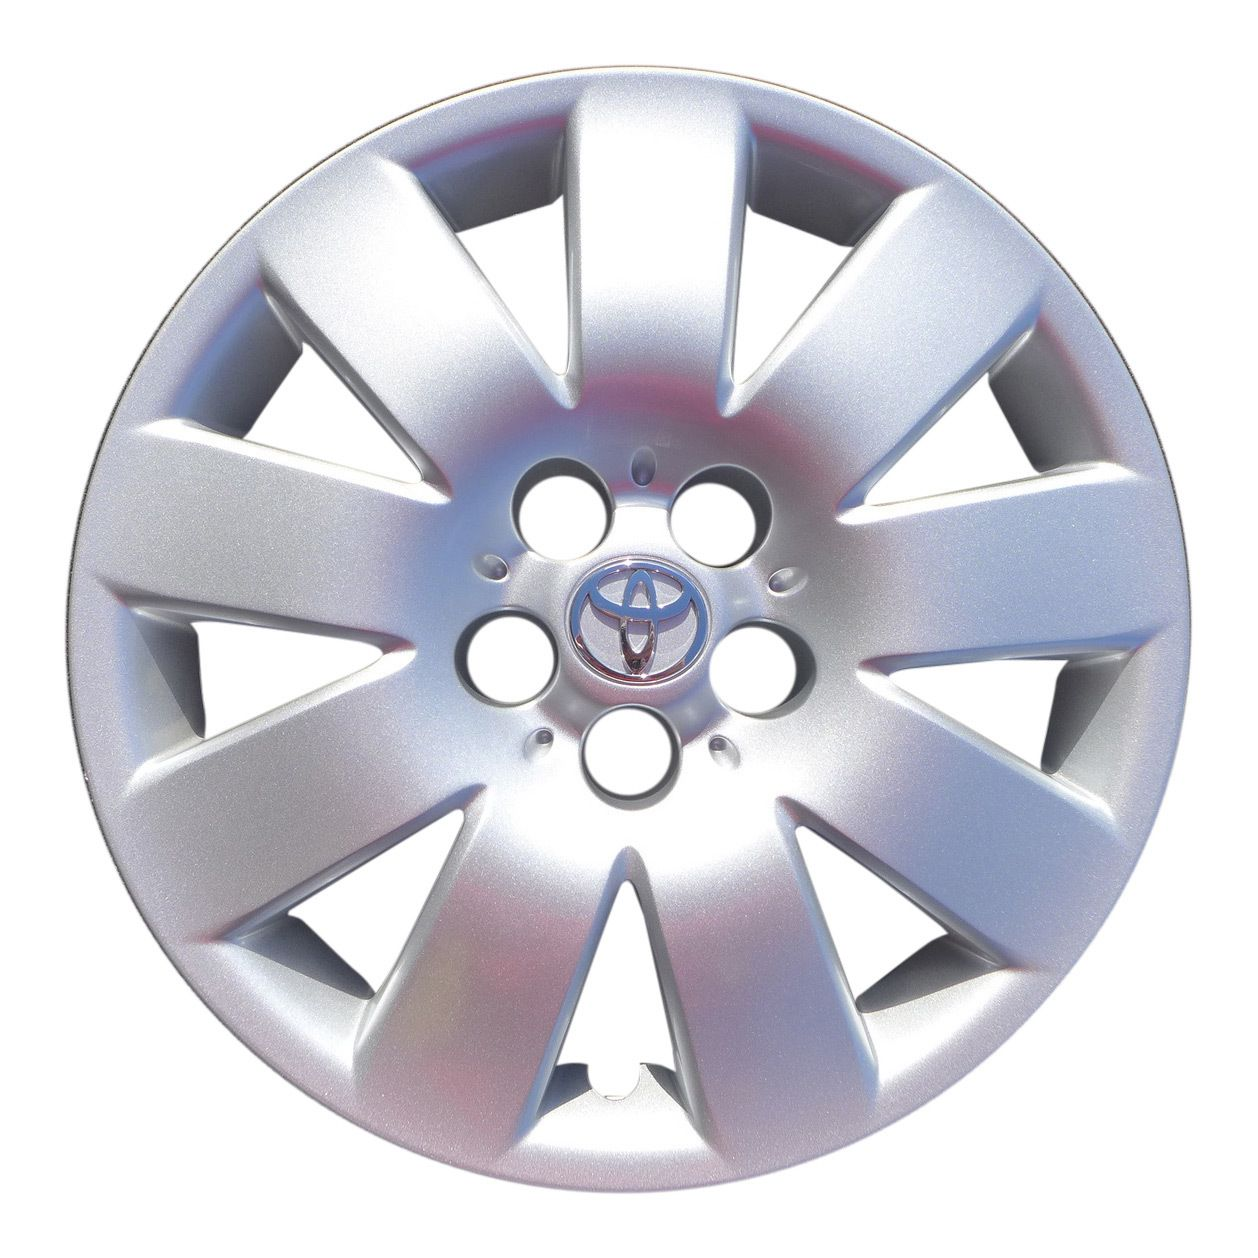 2003 2004 toyota corolla hubcap wheel cover 15 61123